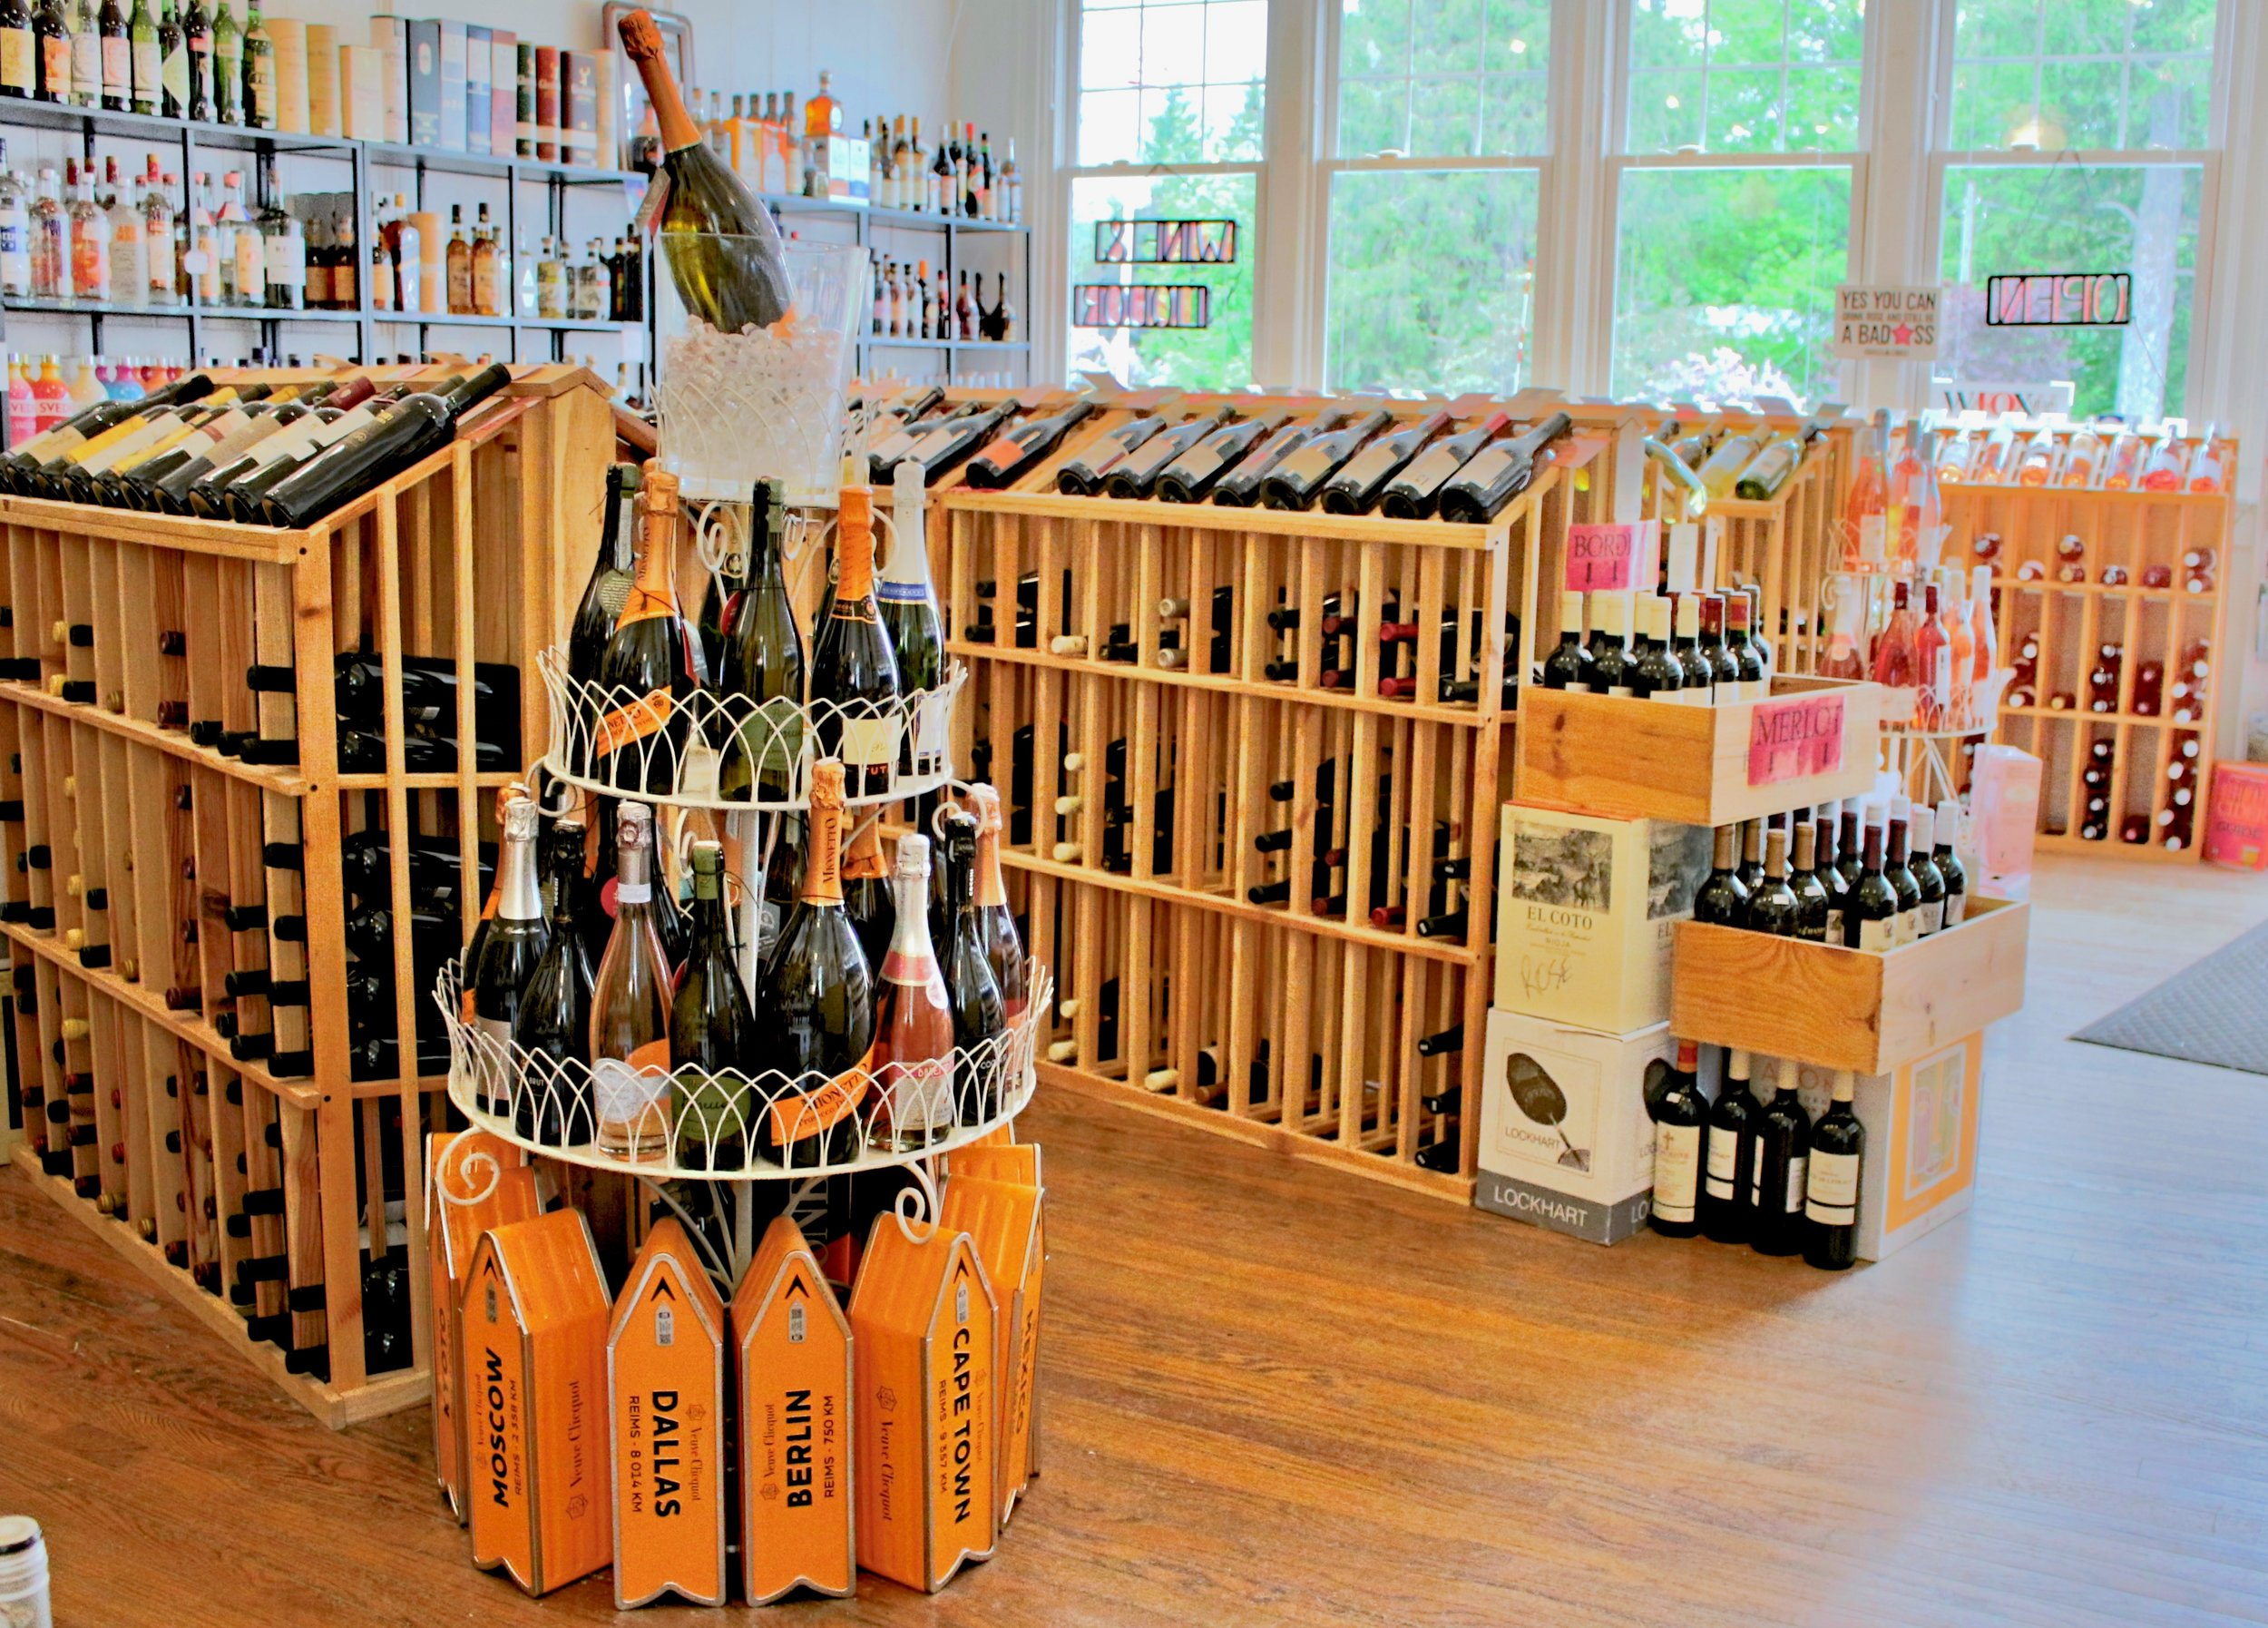 Celebrate your trip to the Catskills - lots of bubbly awaits you at Roxbury Wine & Spirits!